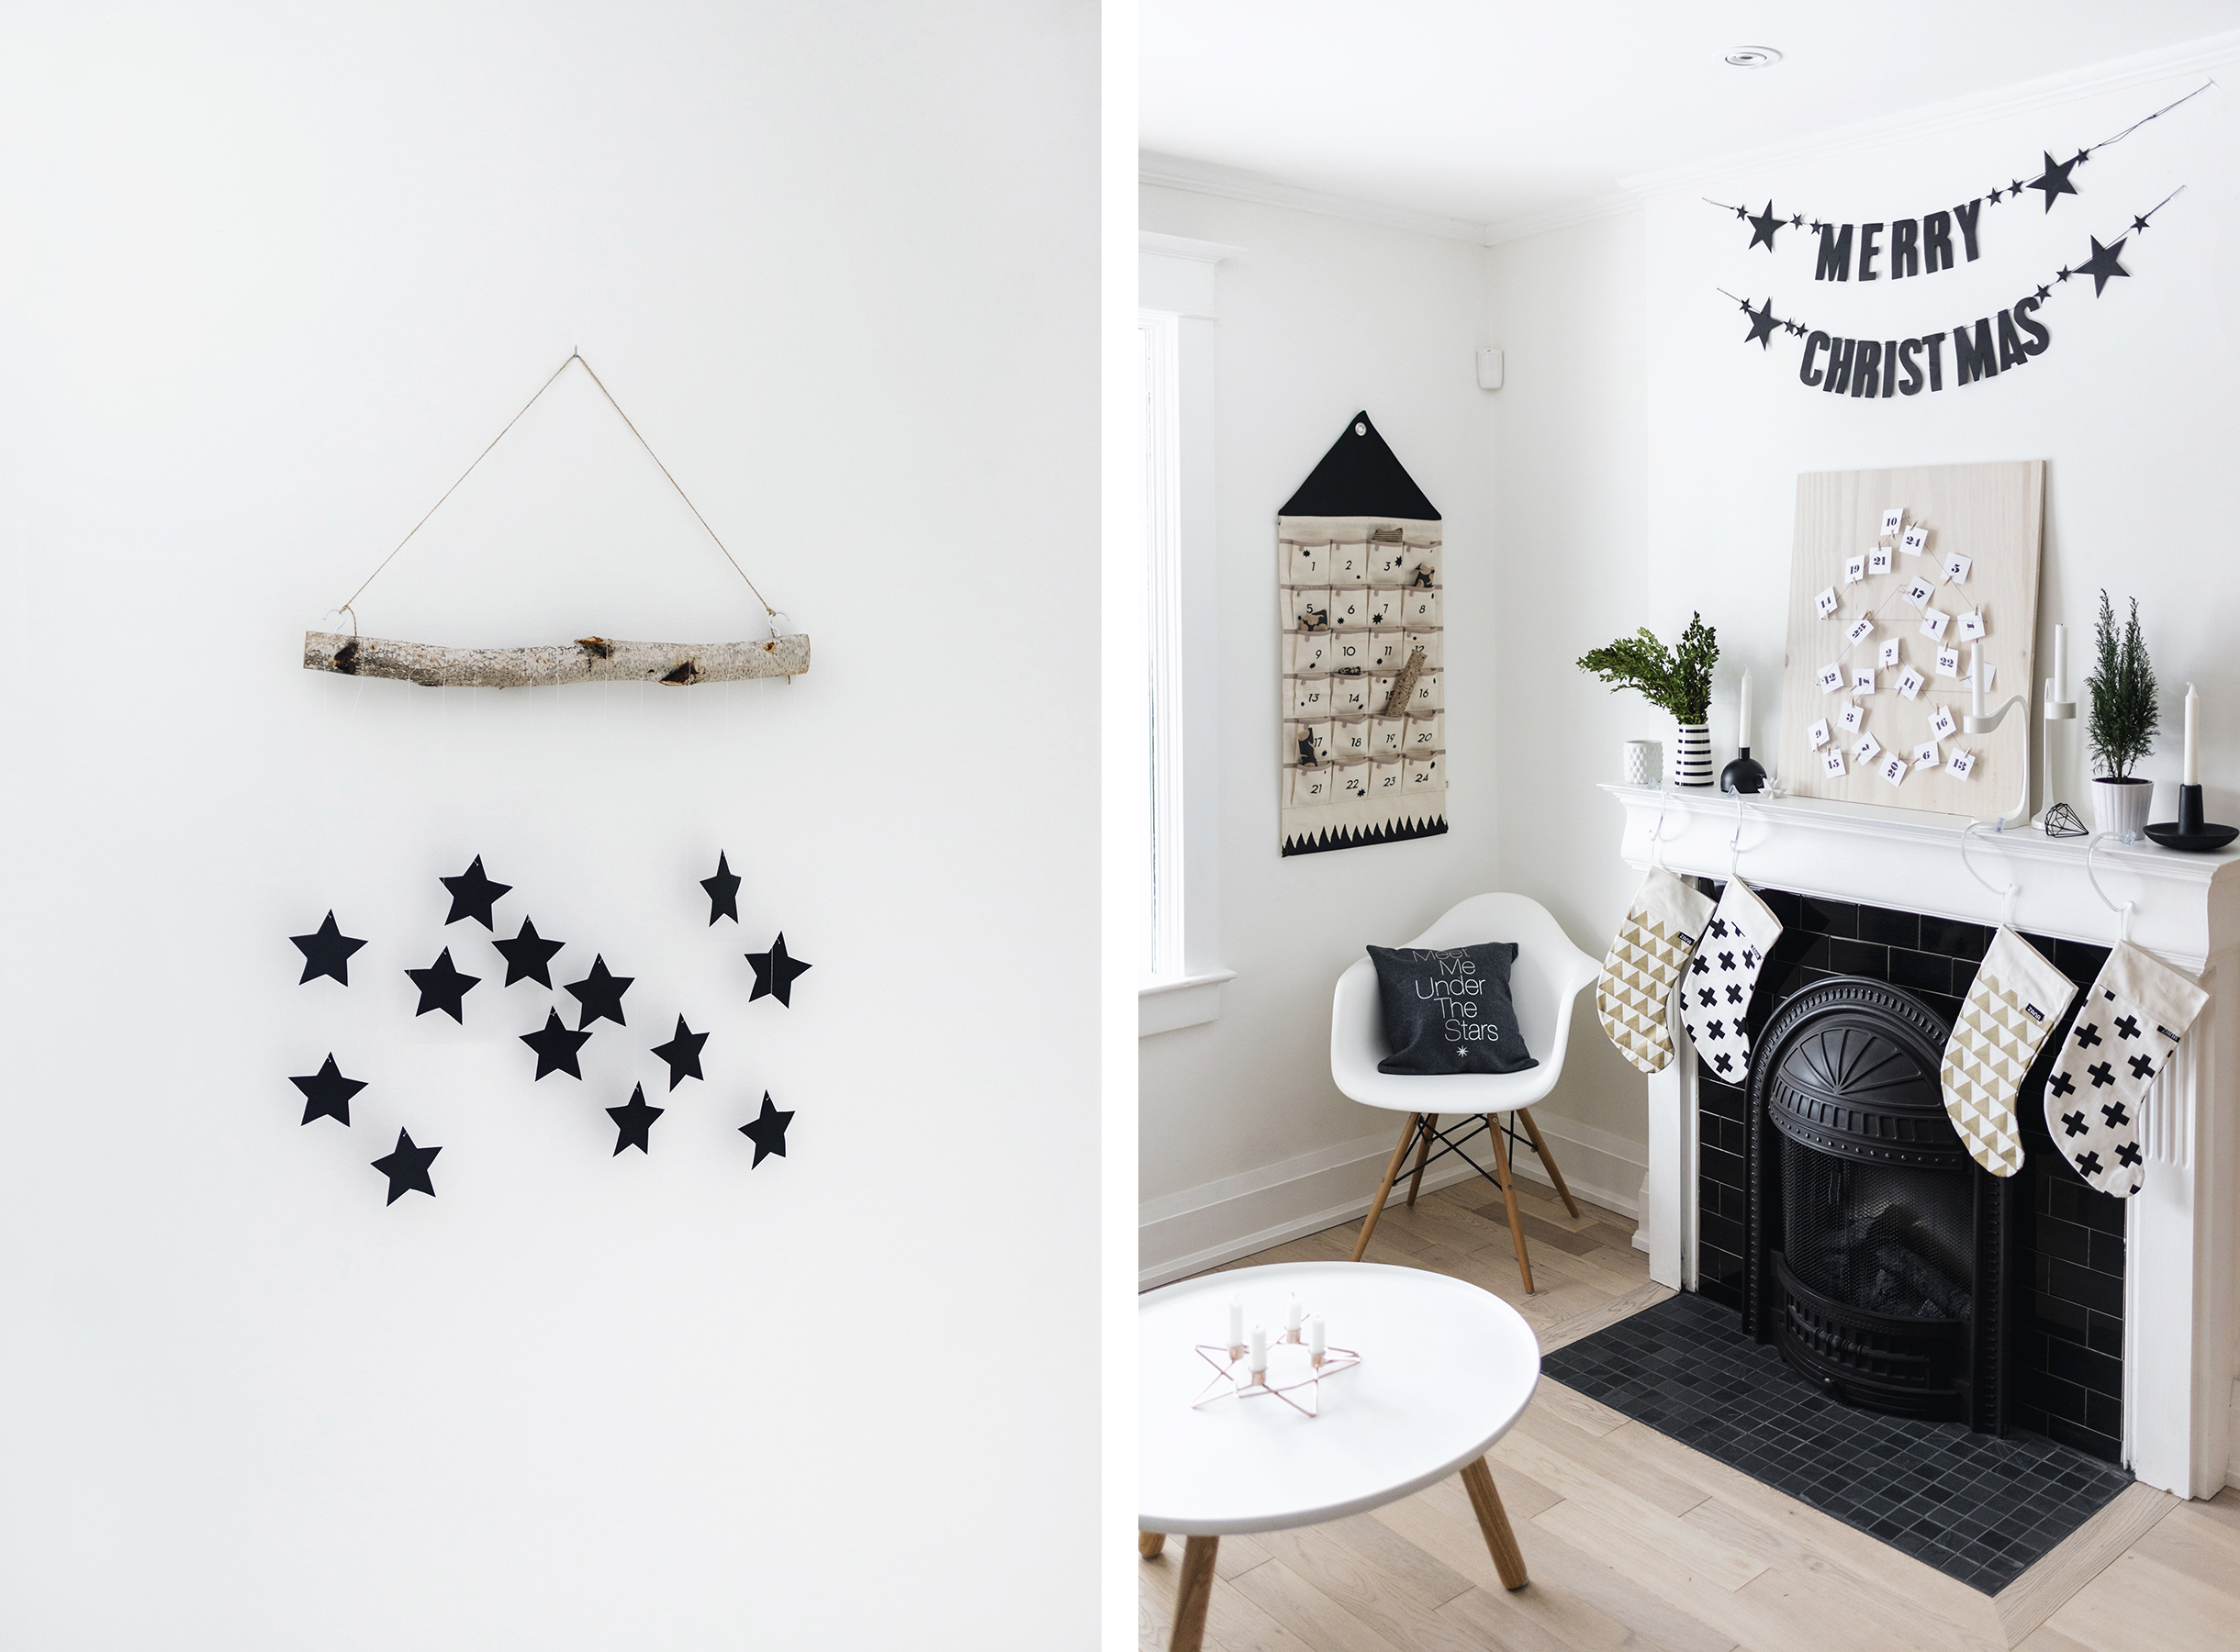 Scandinavian Christmas decor - wall hanging + fireplace with advent calendar | Happy Grey Lucky